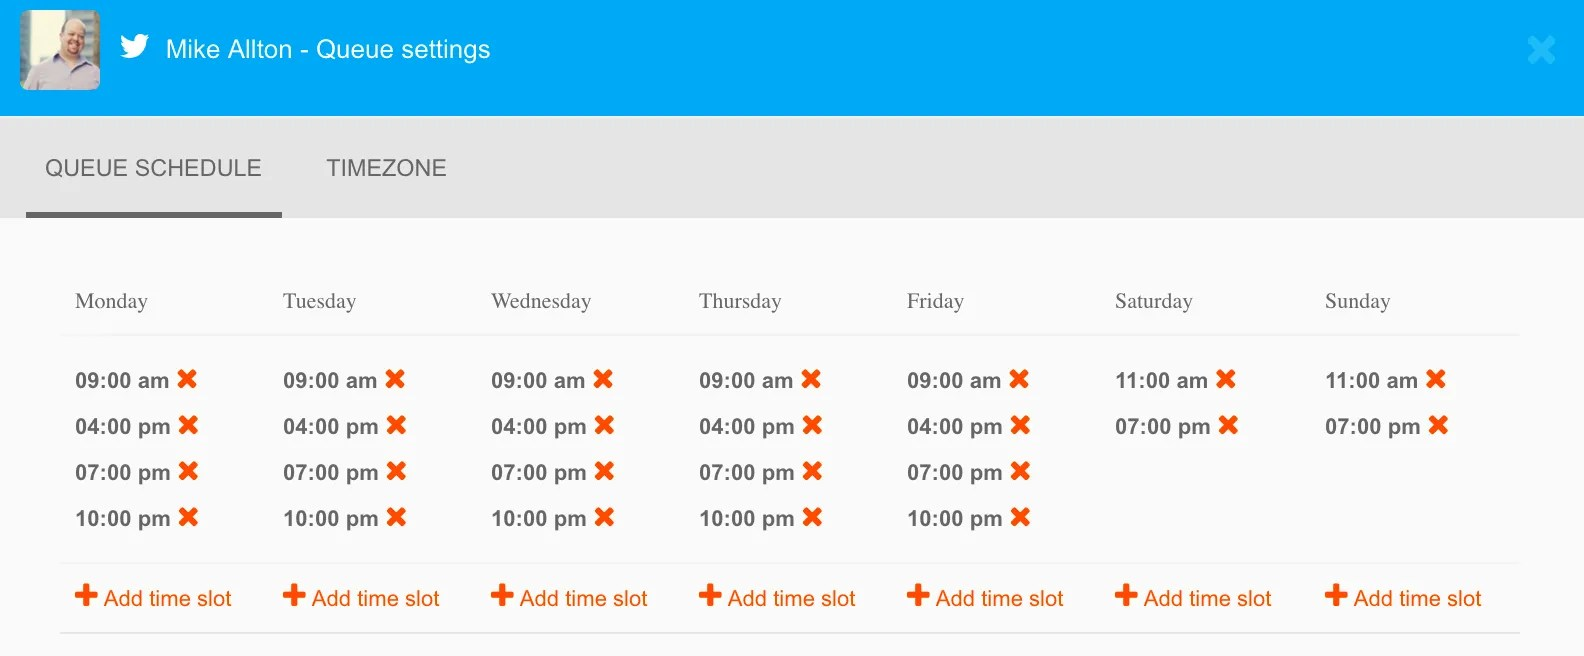 specify specific time-slots for each weekday